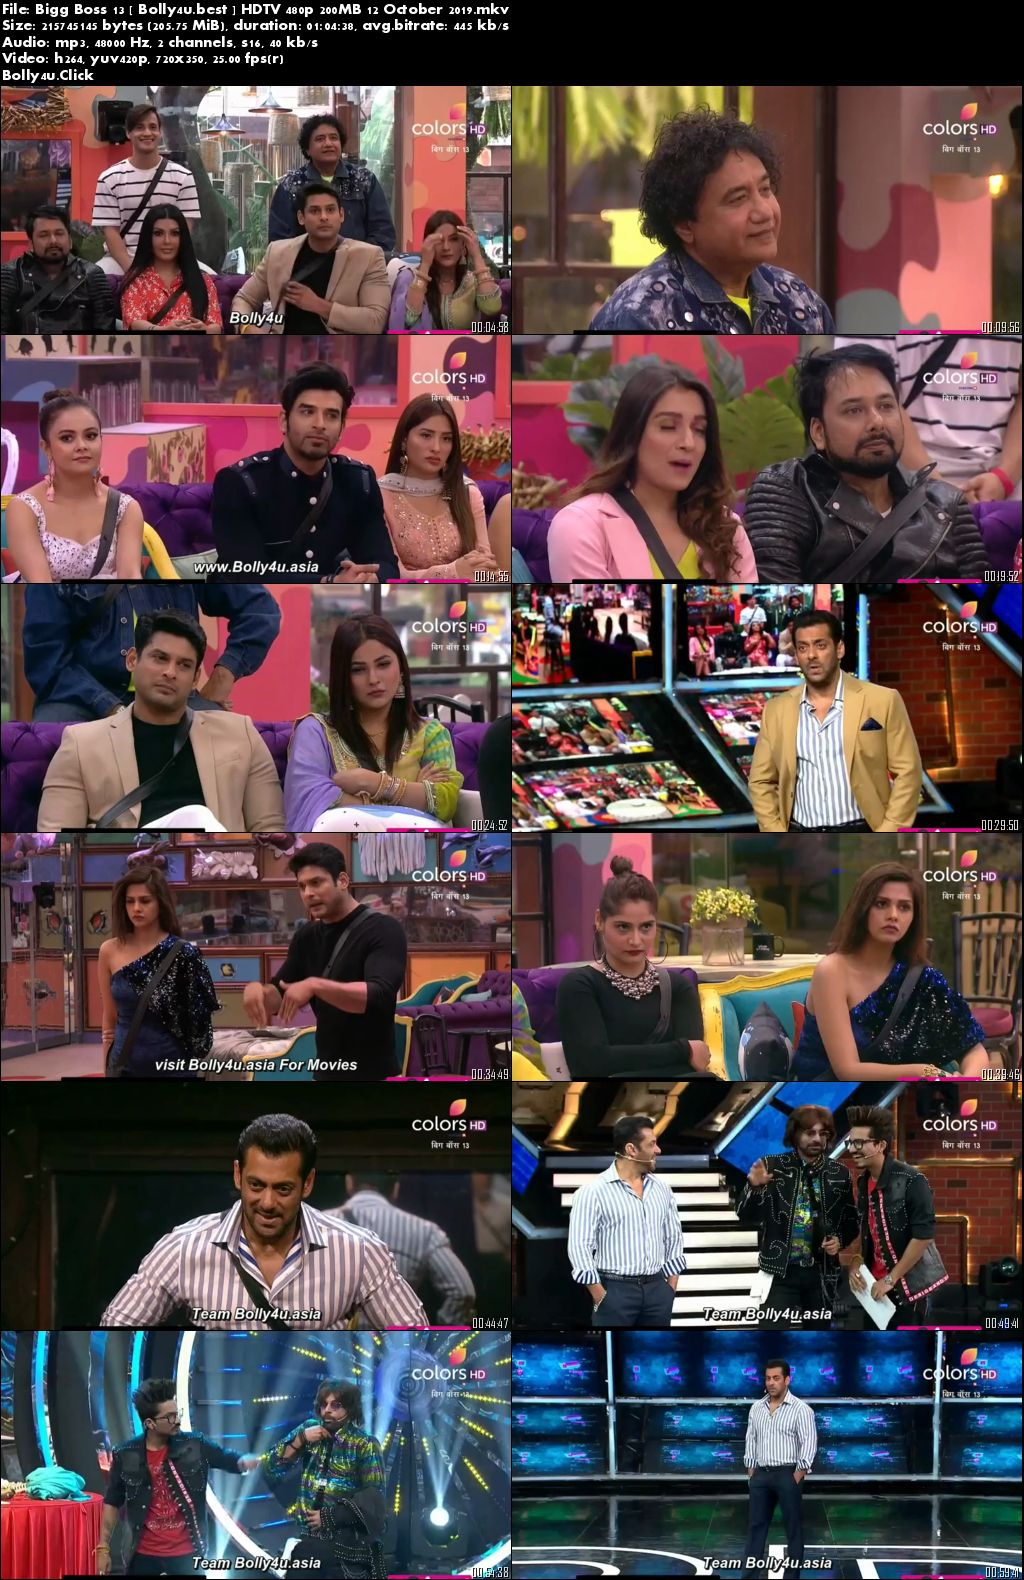 Bigg Boss S13 HDTV 480p 200MB 12 October 2019 Download